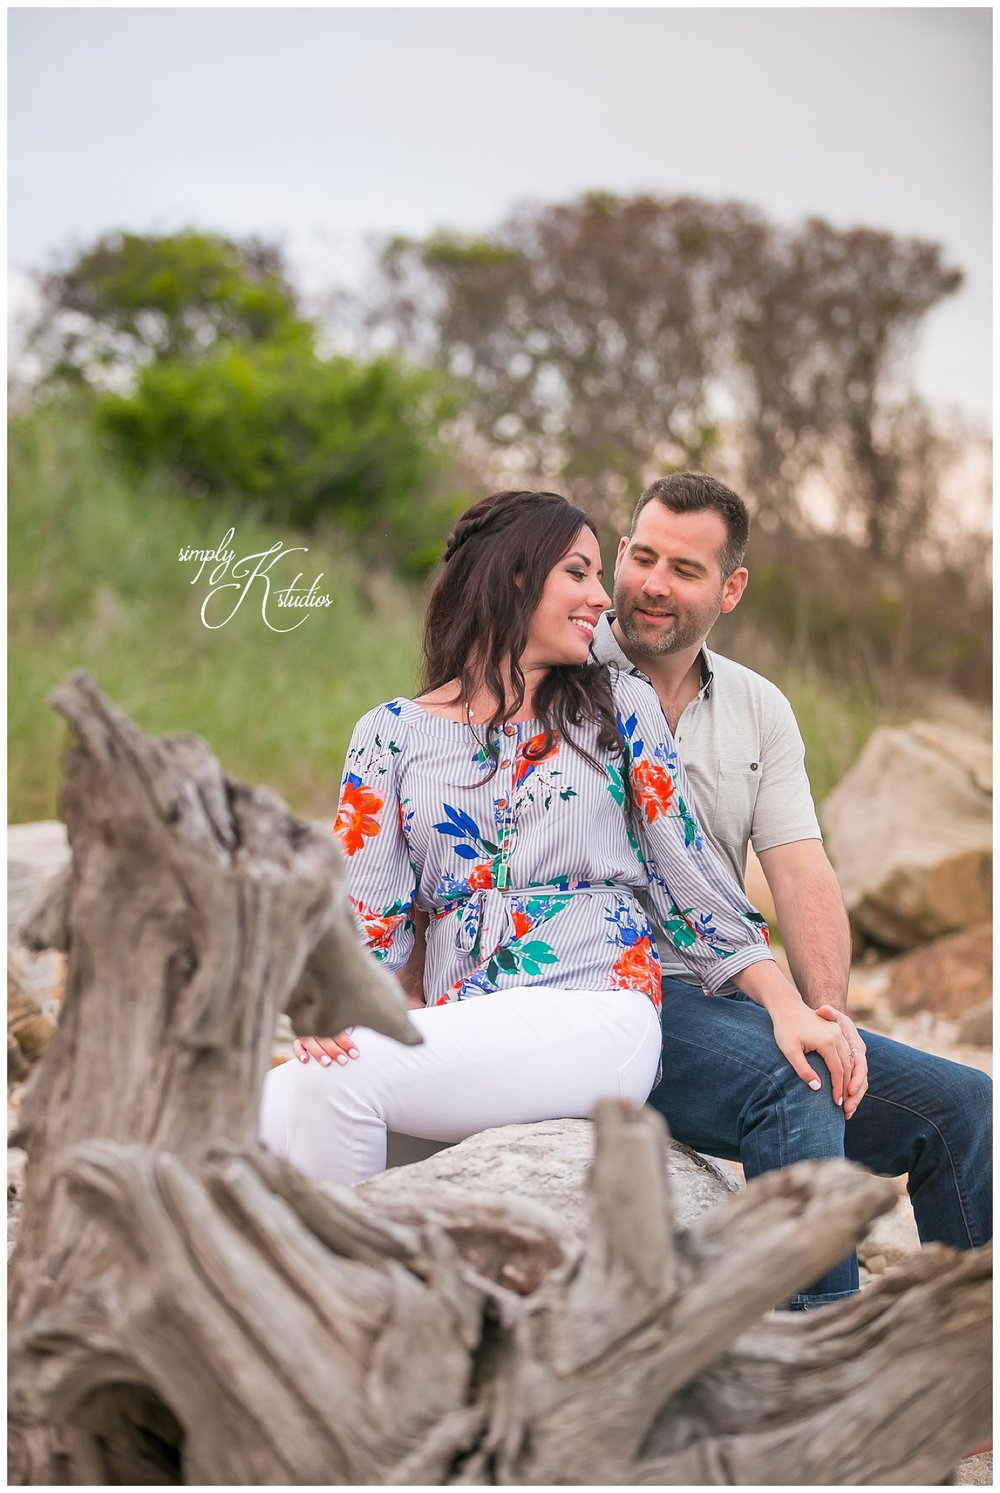 Simply K Studios Engagement Sessions.jpg